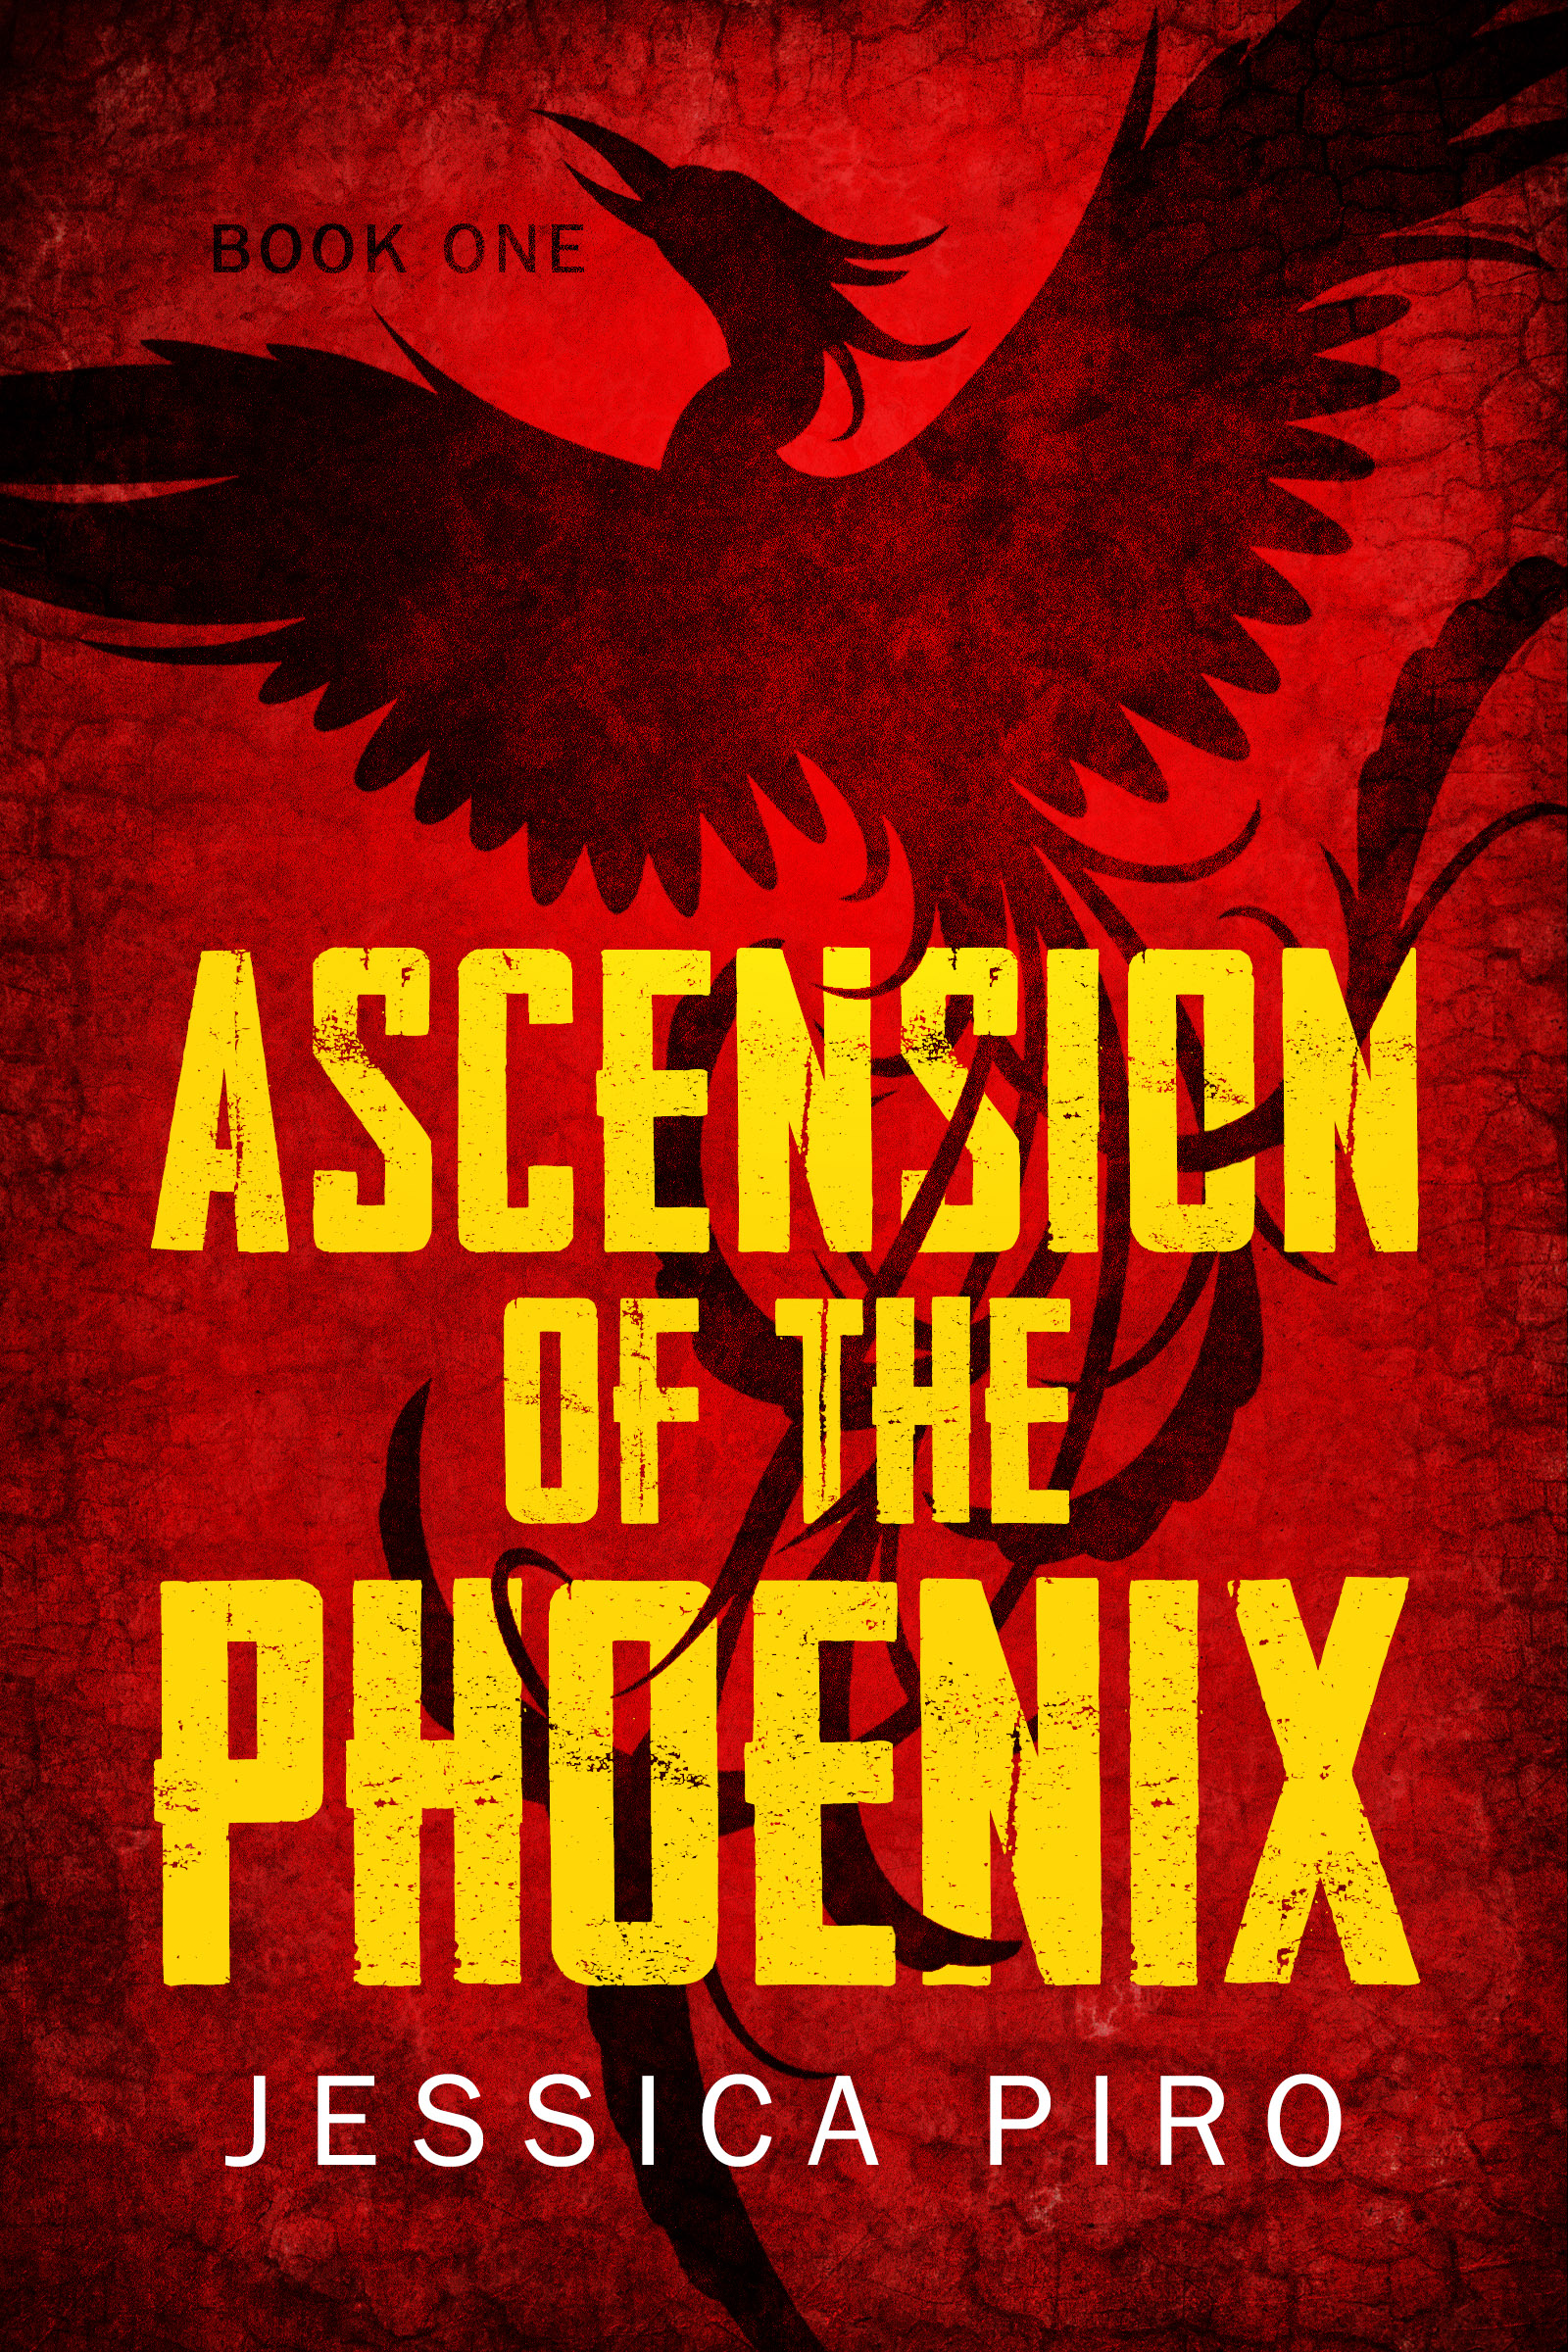 Ascension of the Phoenix by Jessica Piro